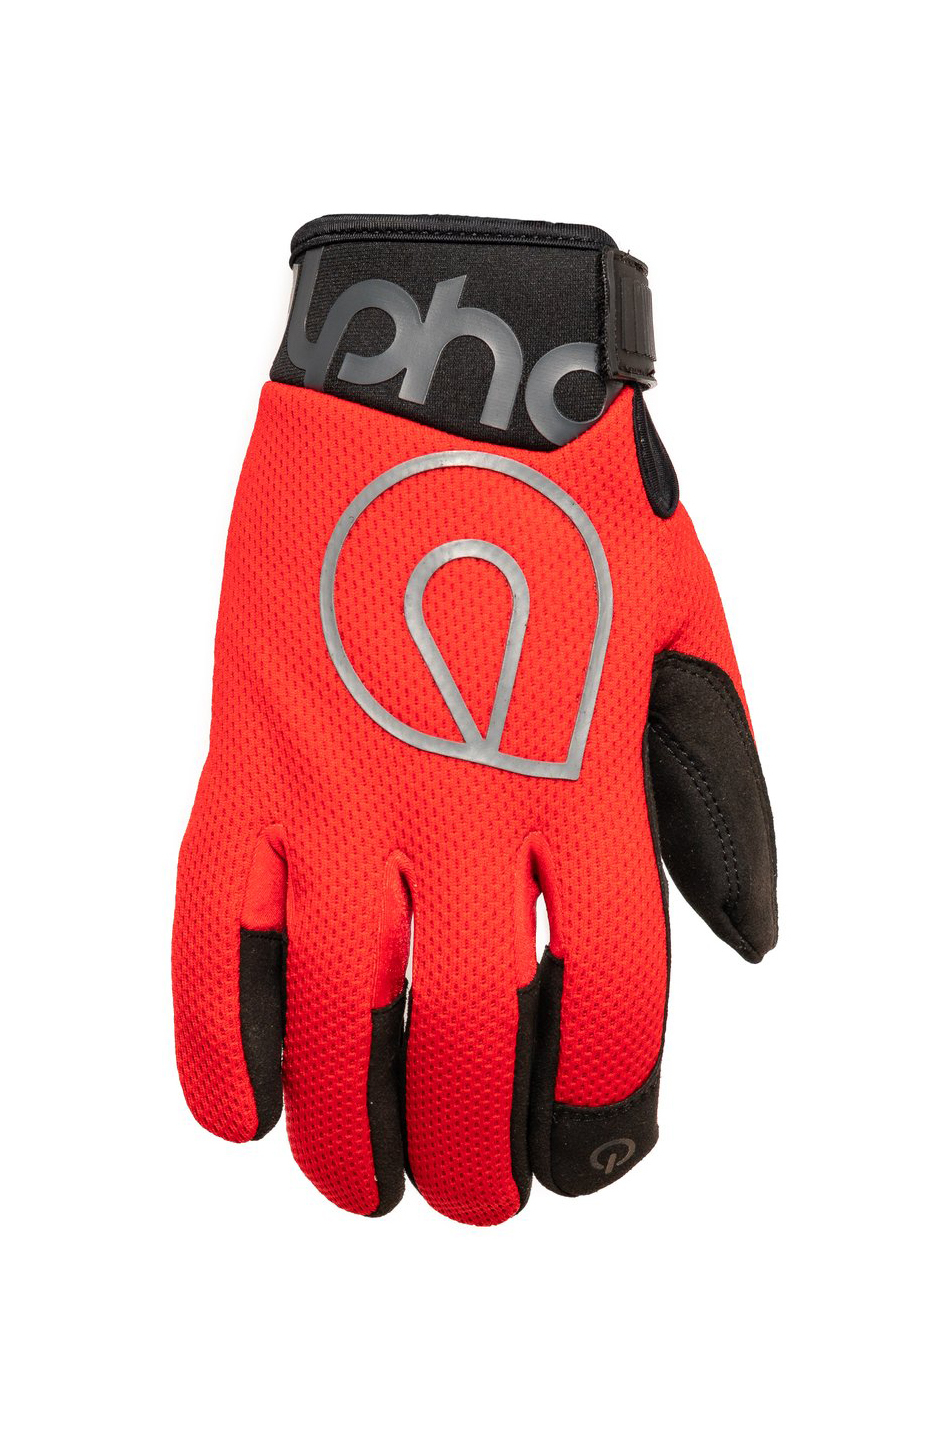 Alpha Gloves AG02-02-S Gloves, Shop, The Standard, Hook and Loop Closure, Neoprene Cuff, Mesh Top, Touch Screen Capable, Synthetic Leather Palm, Red, Small, Pair